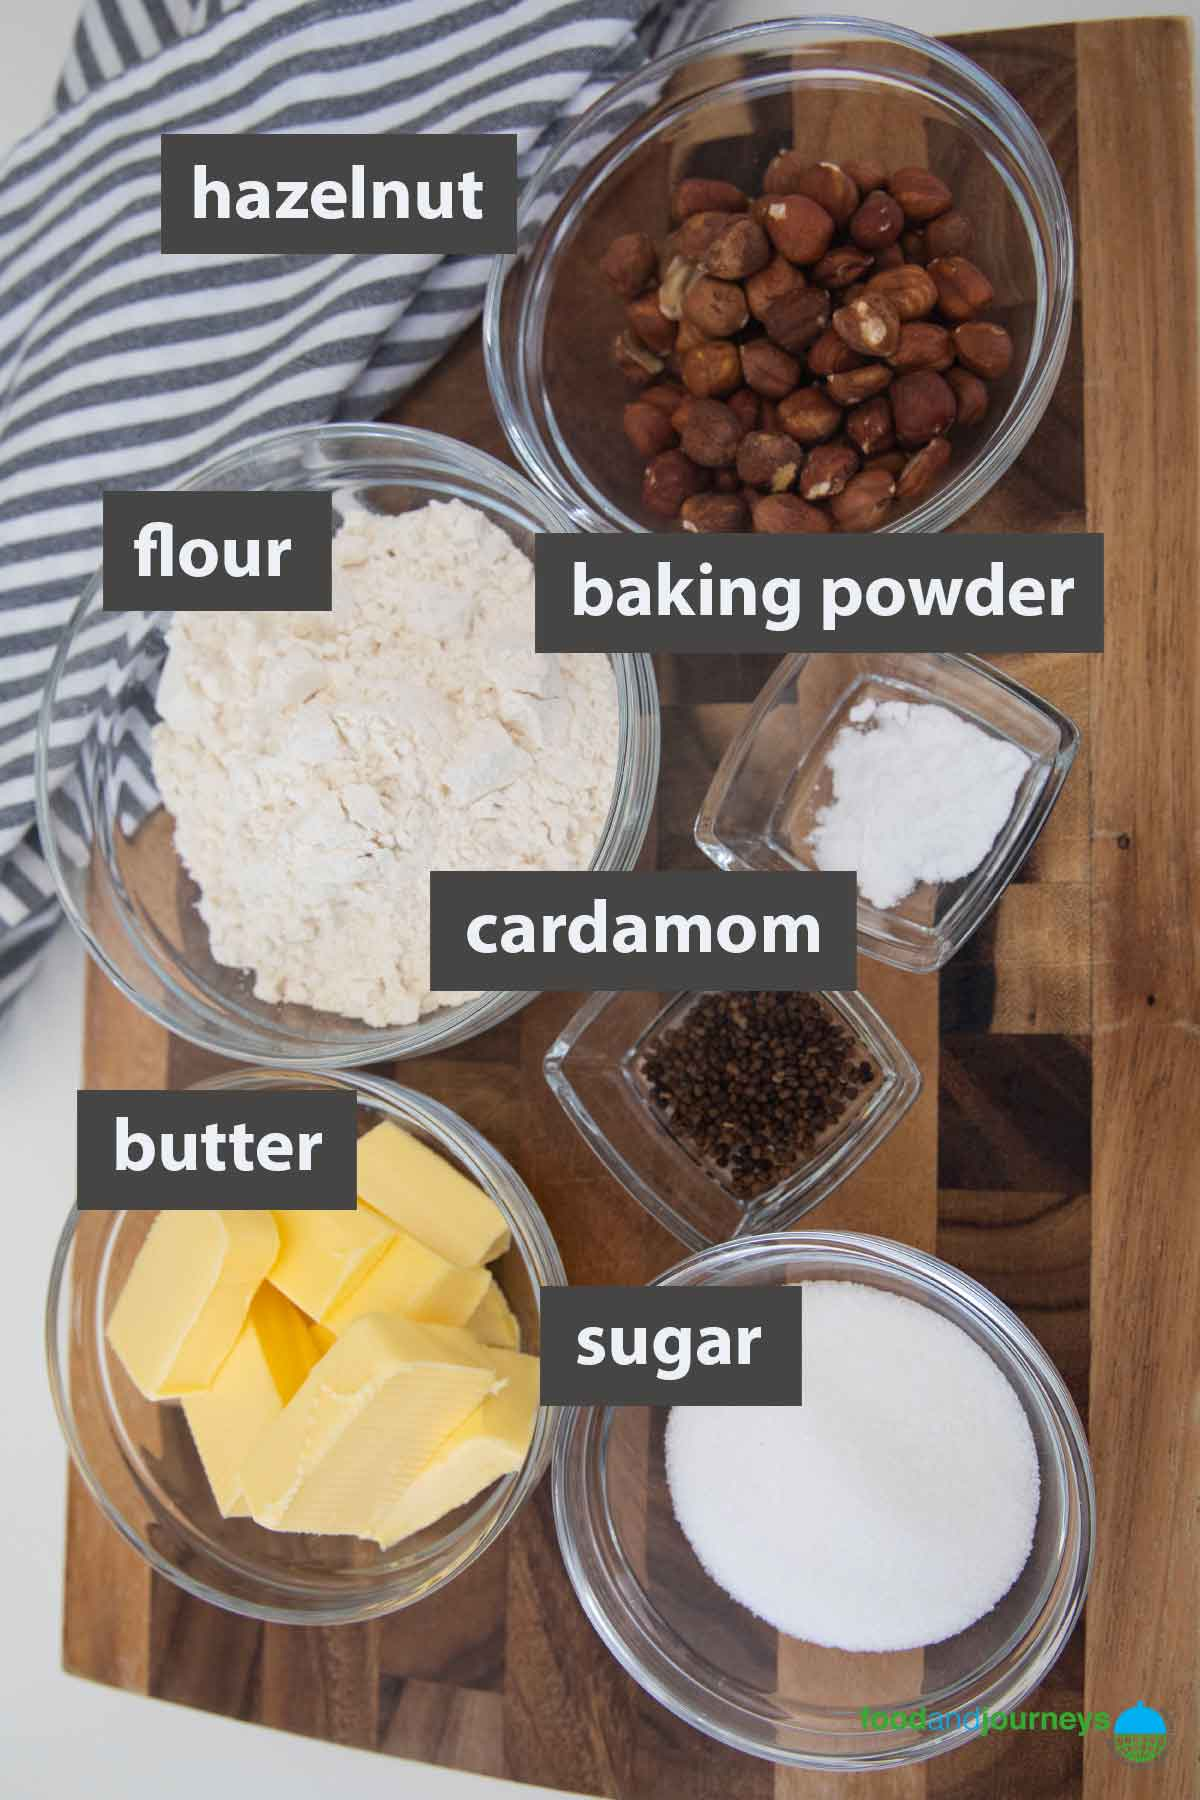 An image showing all the ingredients that you need to prepare cardamom cookies at home.